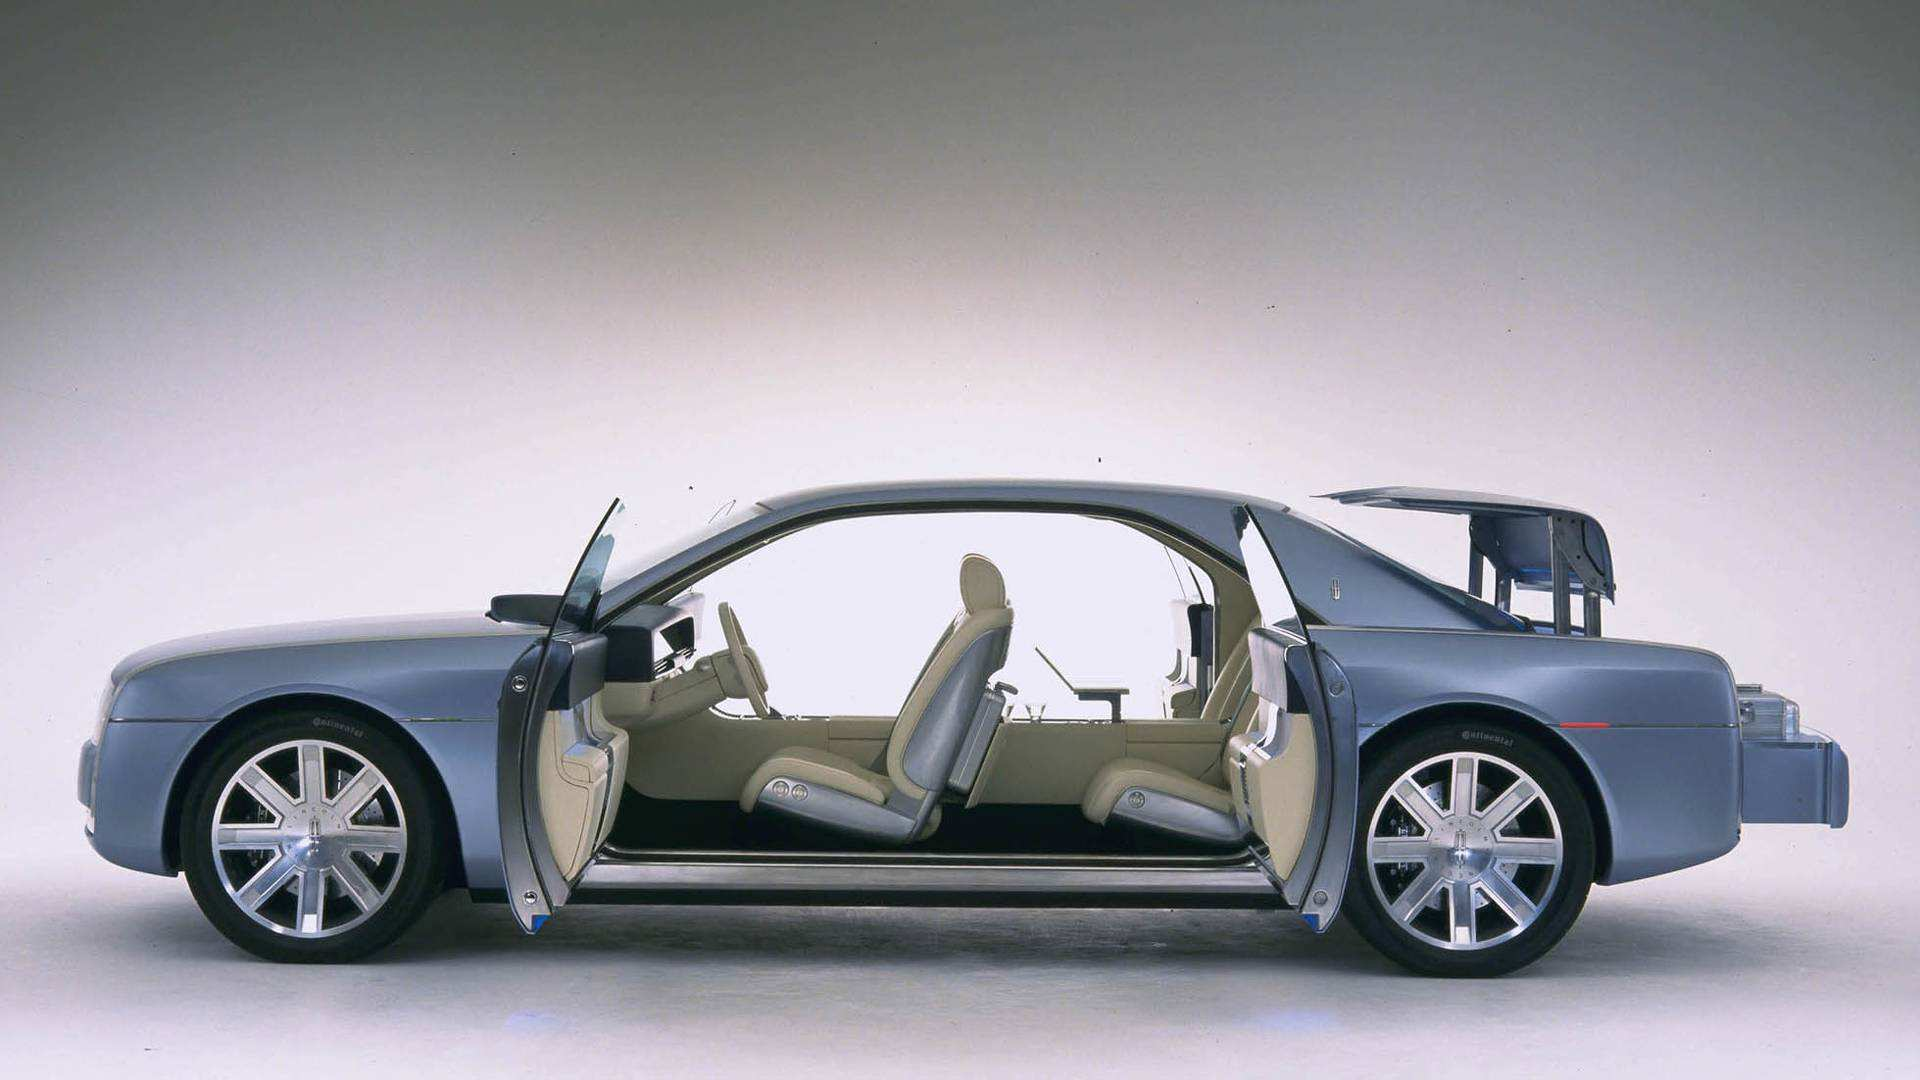 83 All New 2020 The Lincoln Continental Images